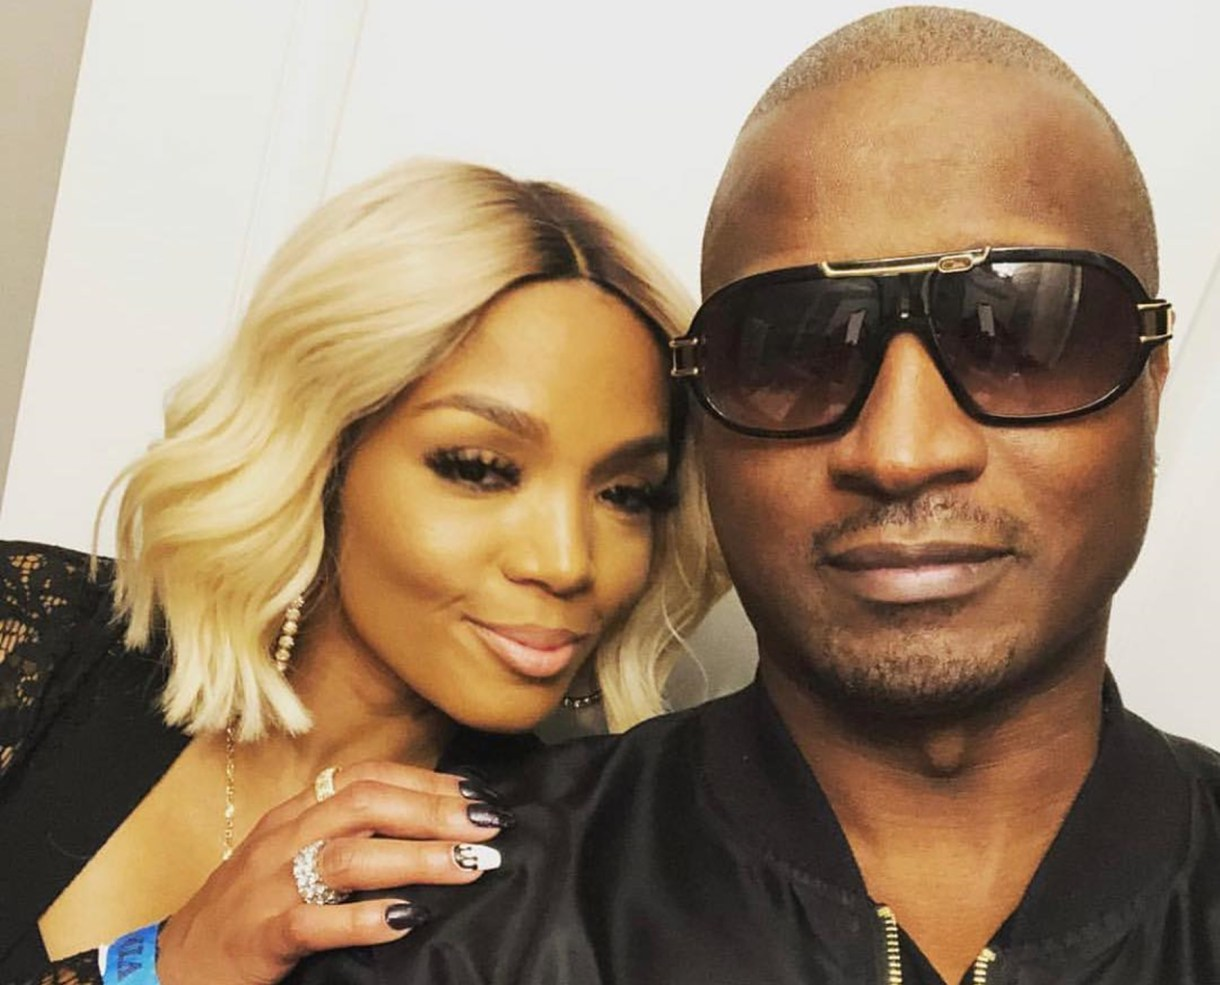 Rasheeda Frost Celebrates The Life Of Kirk Frost's Late Brother, Keith Frost With A Beautiful Photo